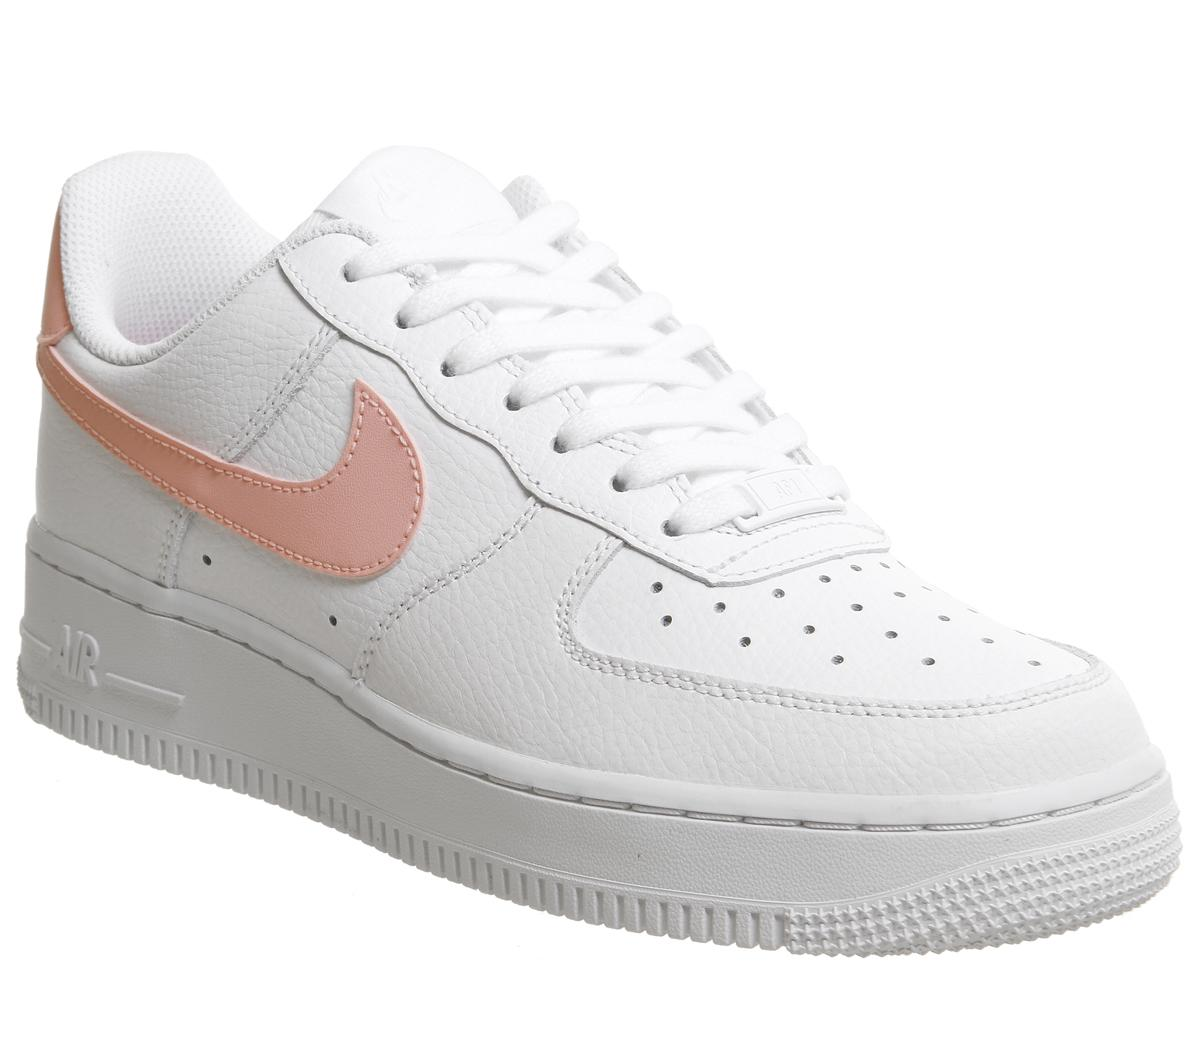 apenas Despertar Emperador  Nike Air Force 1 07 Trainers White Oracle Pink White - Hers trainers